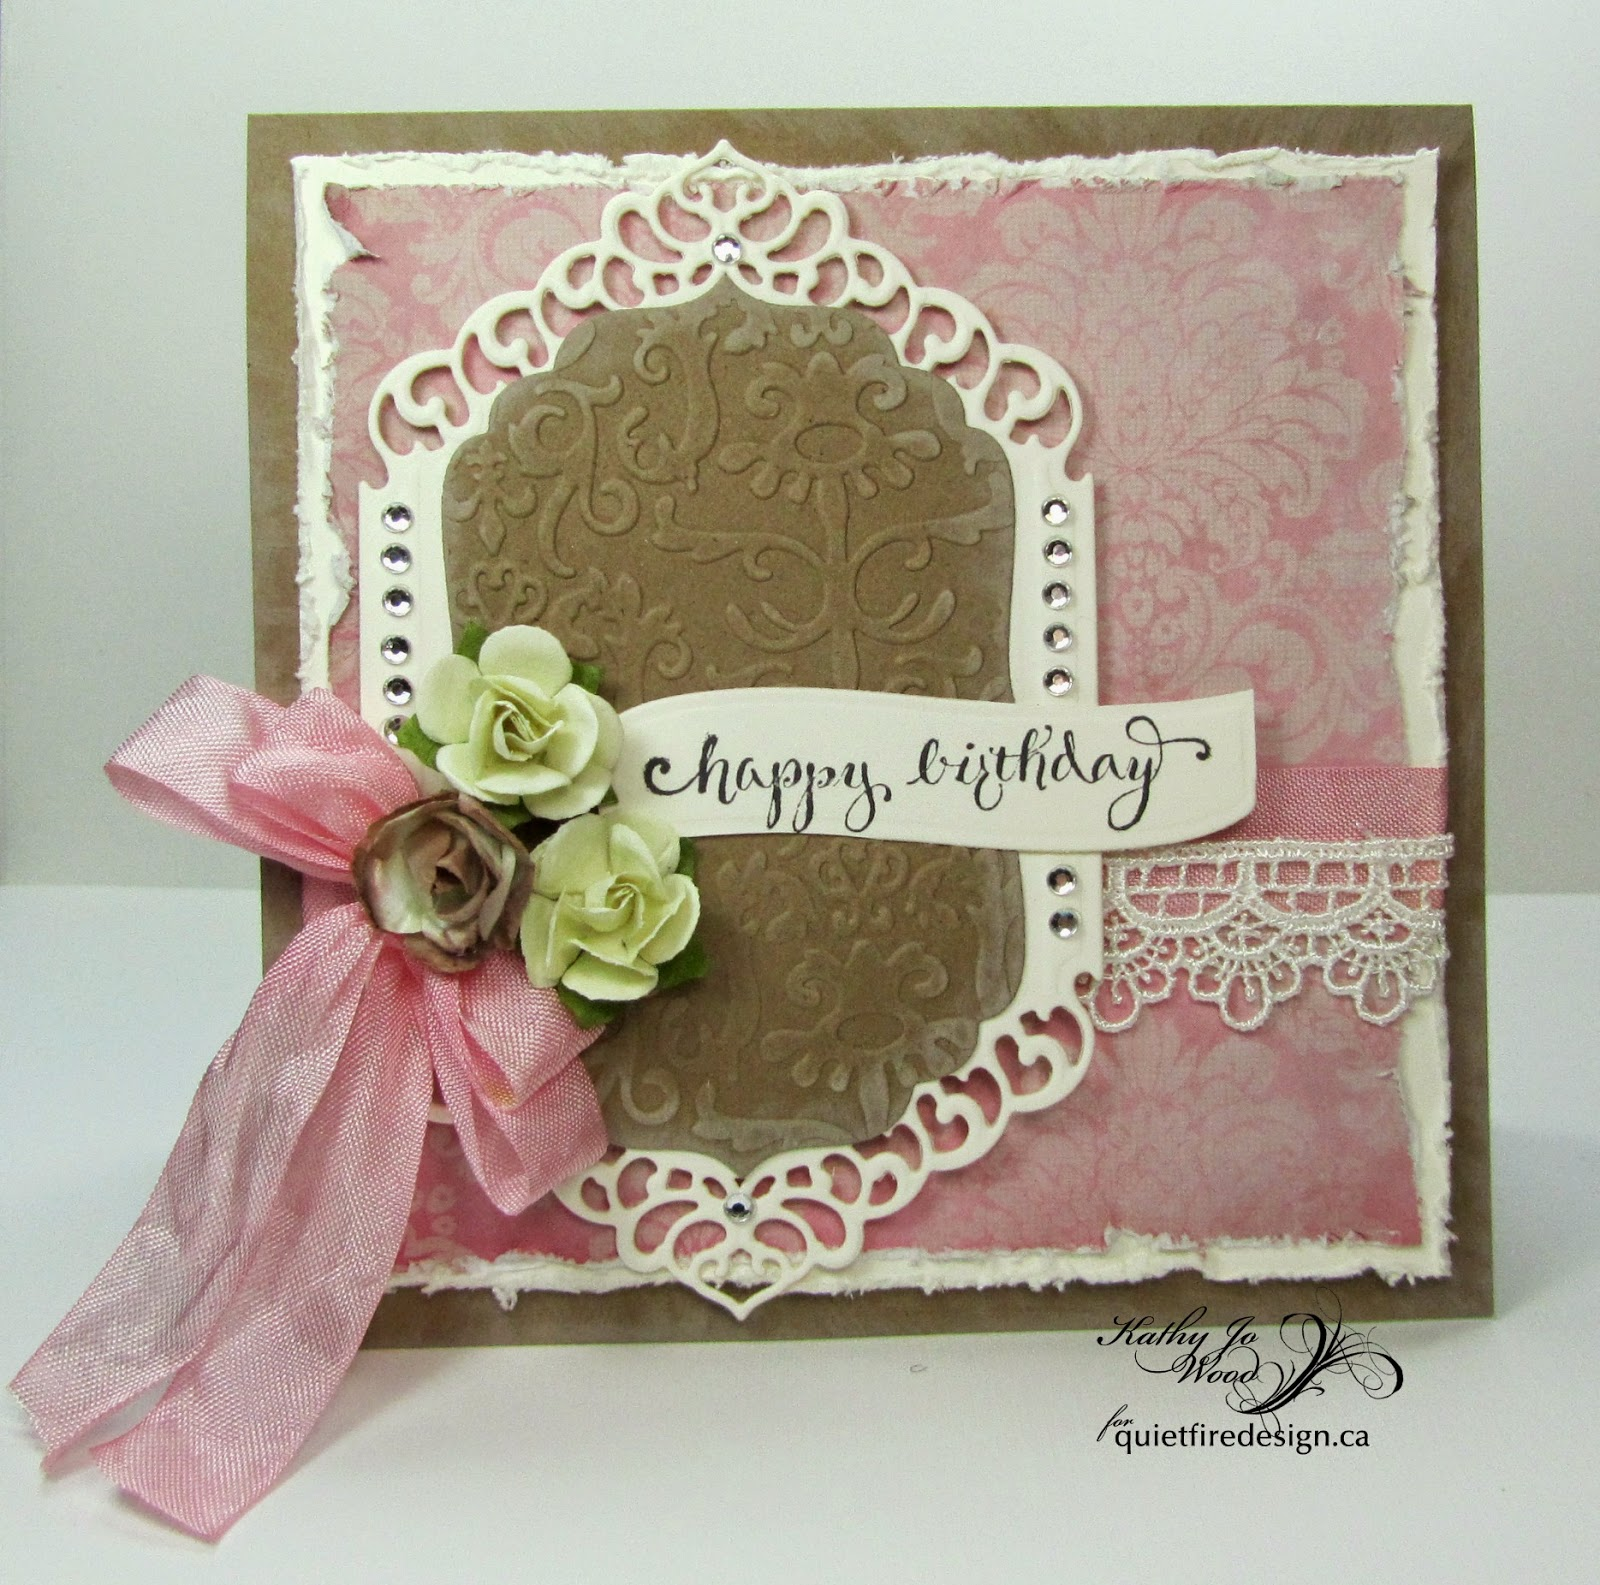 Quietfire Design, Happy Birthday Plain & Simple, Home is where your mom is, Happy Family Days, birthday card, fancy fold, spellbinders, Kathy Jo Wood